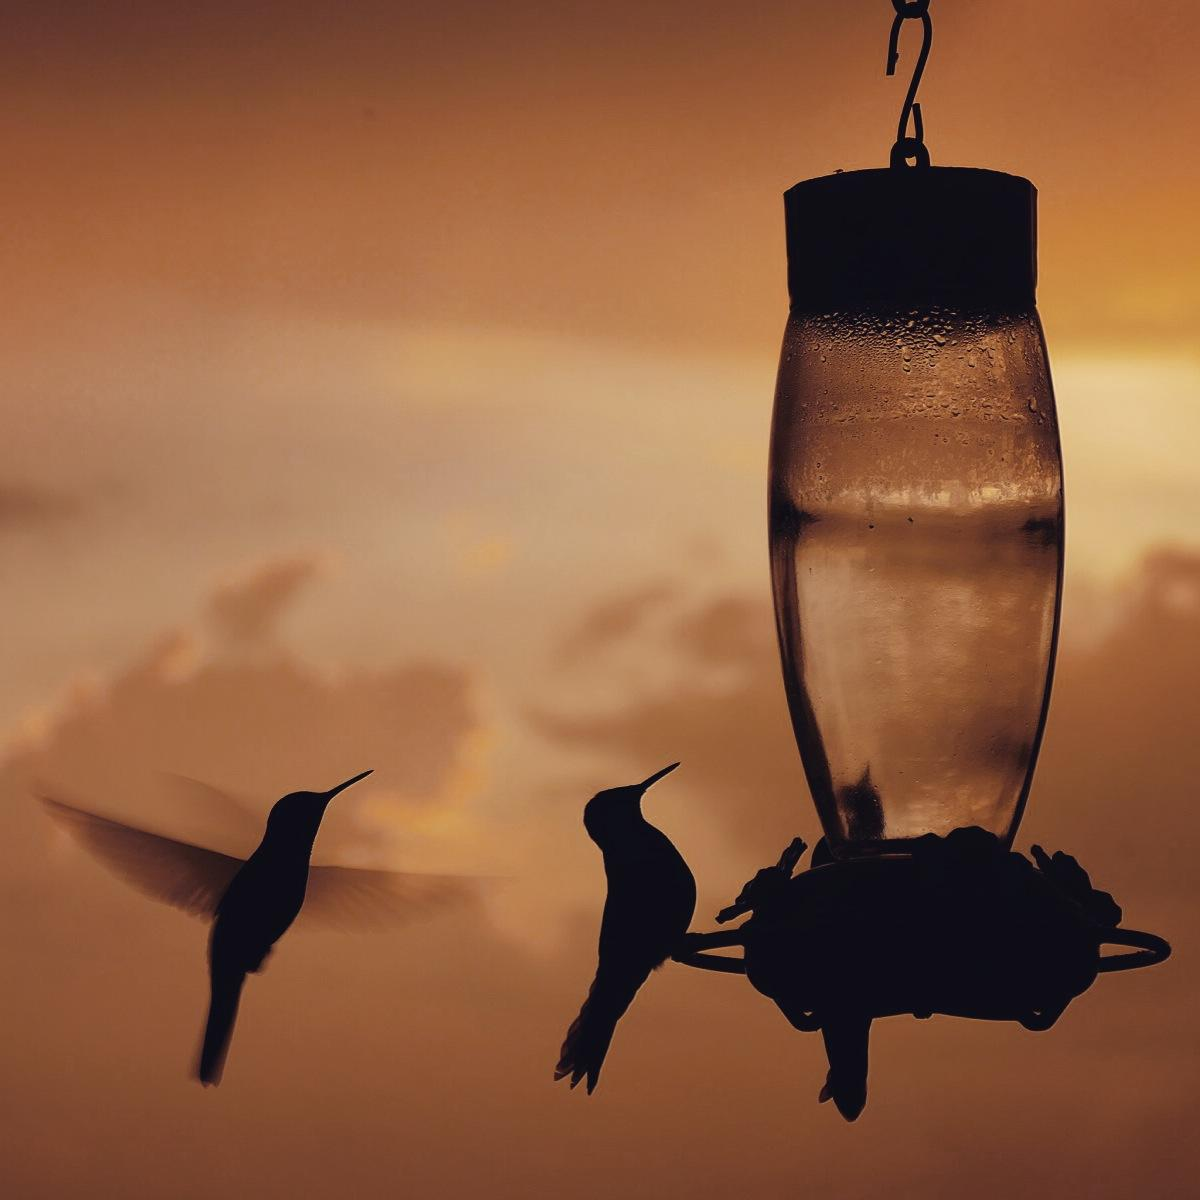 Hummingbirds get a last sip of the day at Rio Blanco's feeders after sunset. Noah Strycker